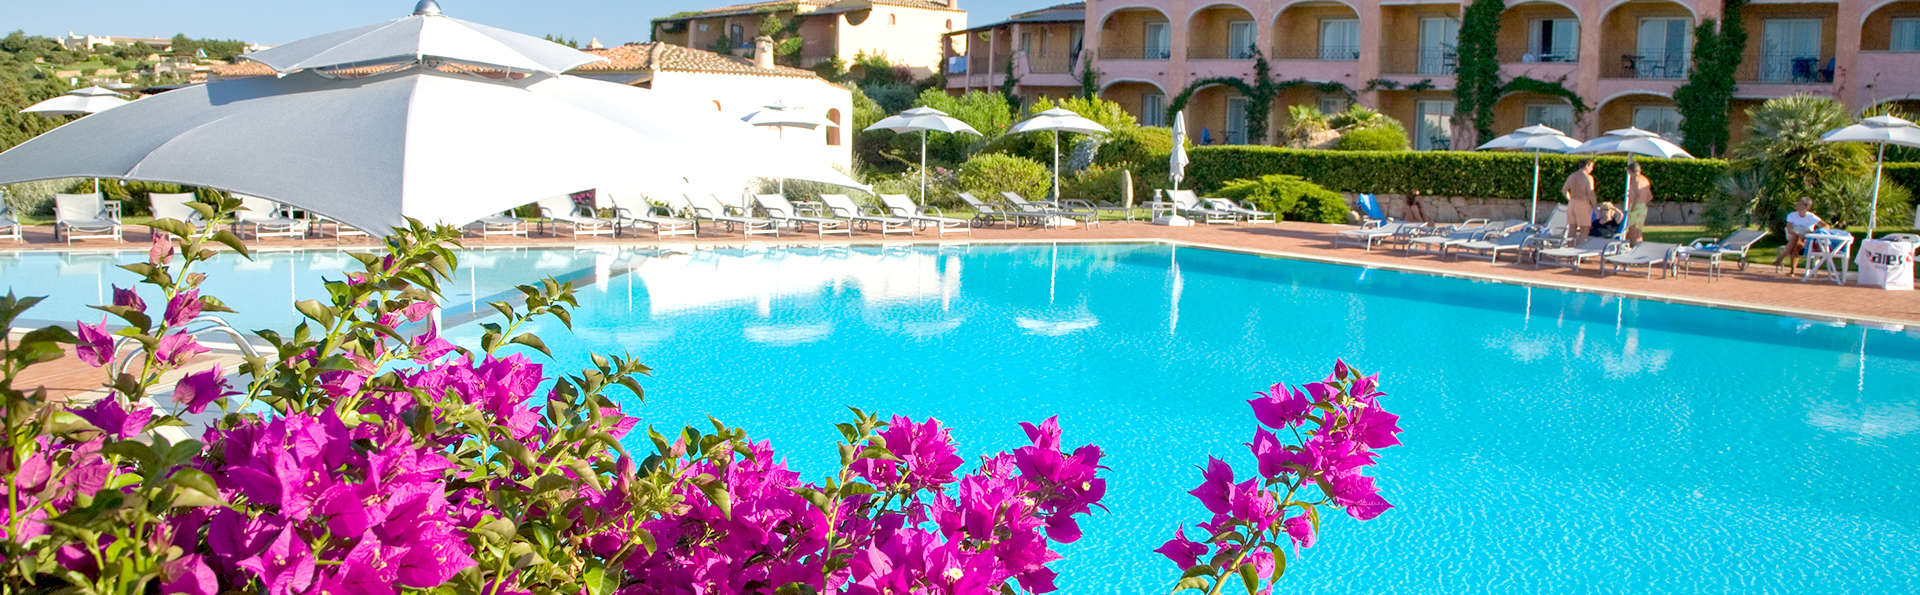 Grand Hotel in Porto Cervo - Edit_Pool2.jpg